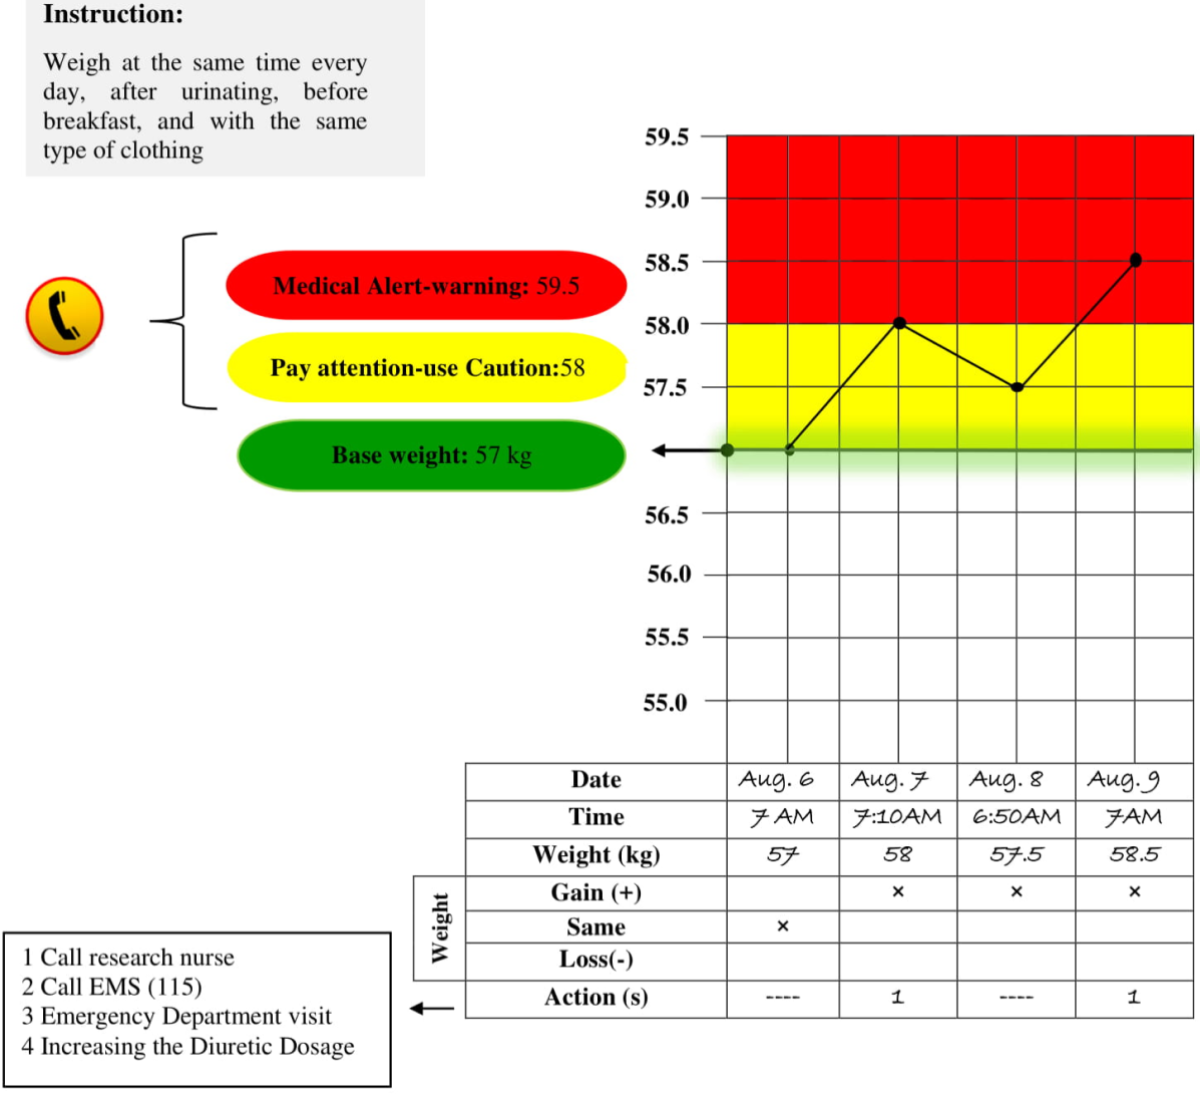 JRP - Self-Monitoring by Traffic Light Color Coding Versus